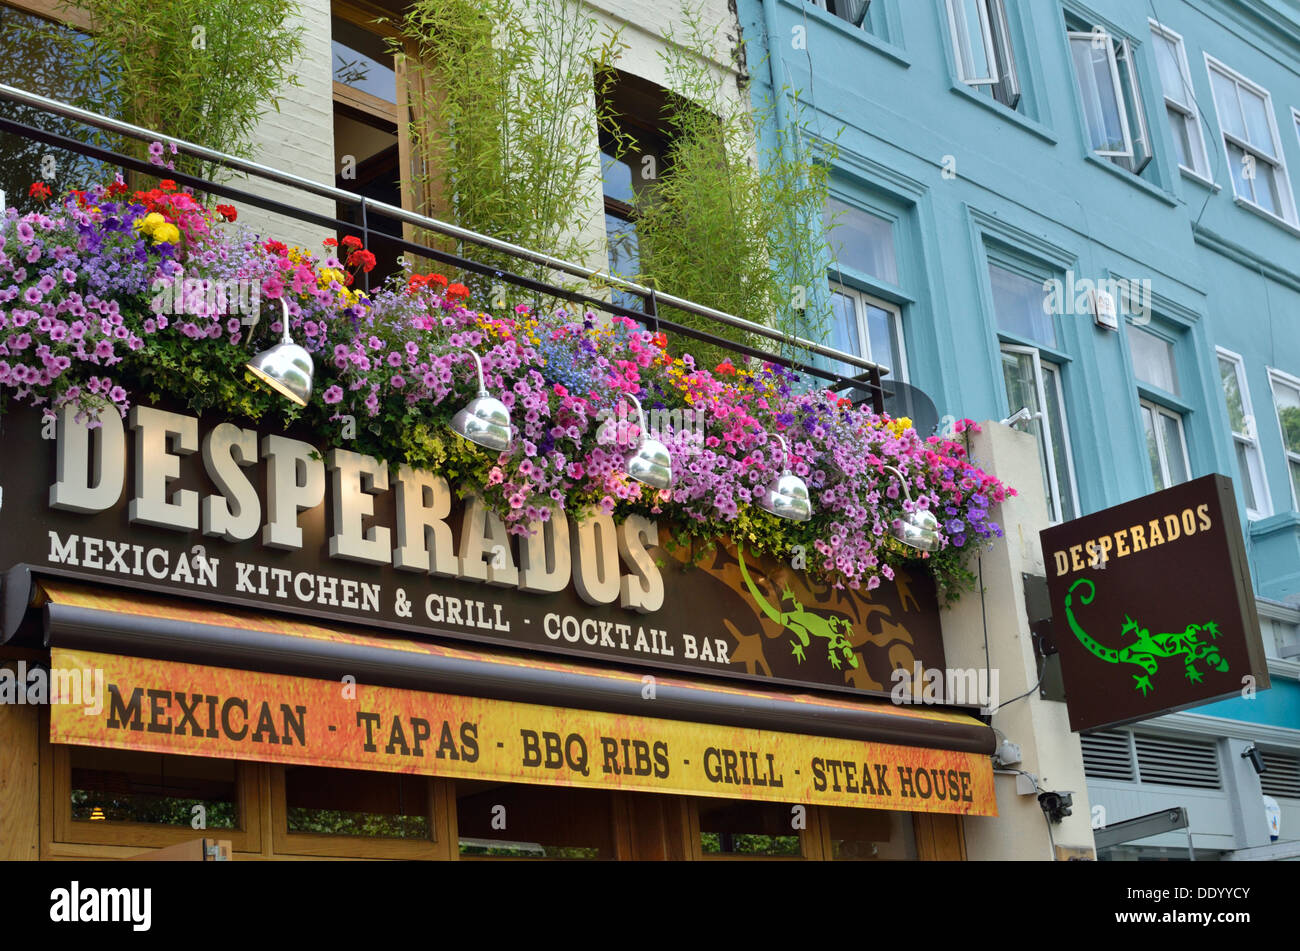 Desperados Mexican Restaurant In Angel Islington London Uk Stock Photo Alamy